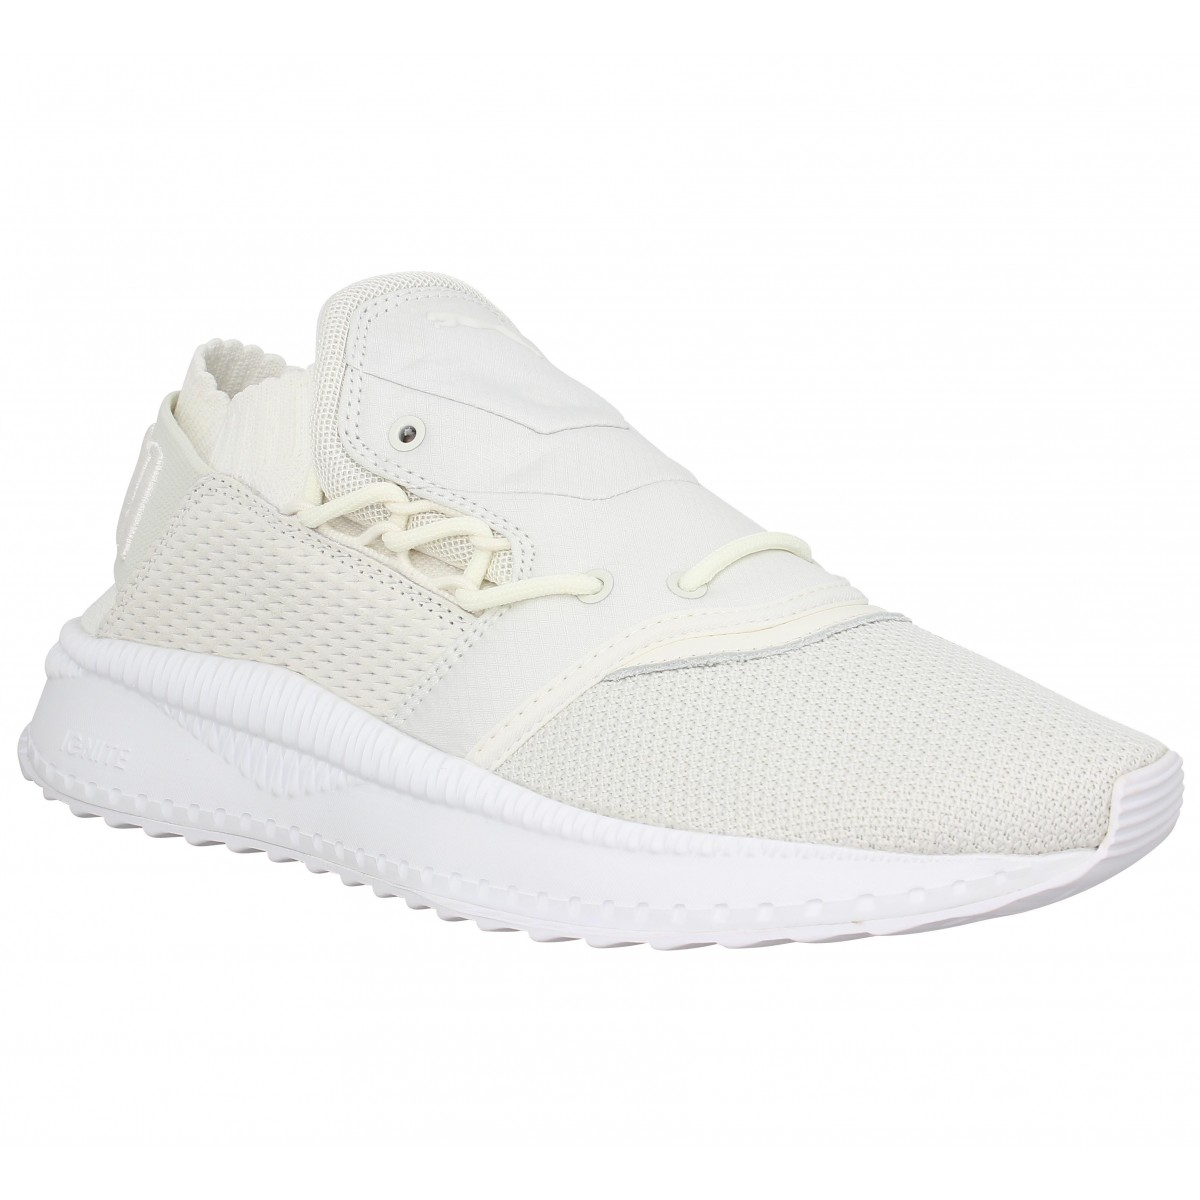 Baskets PUMA Tsugi Shinsei Raw toile Homme Marshmallow